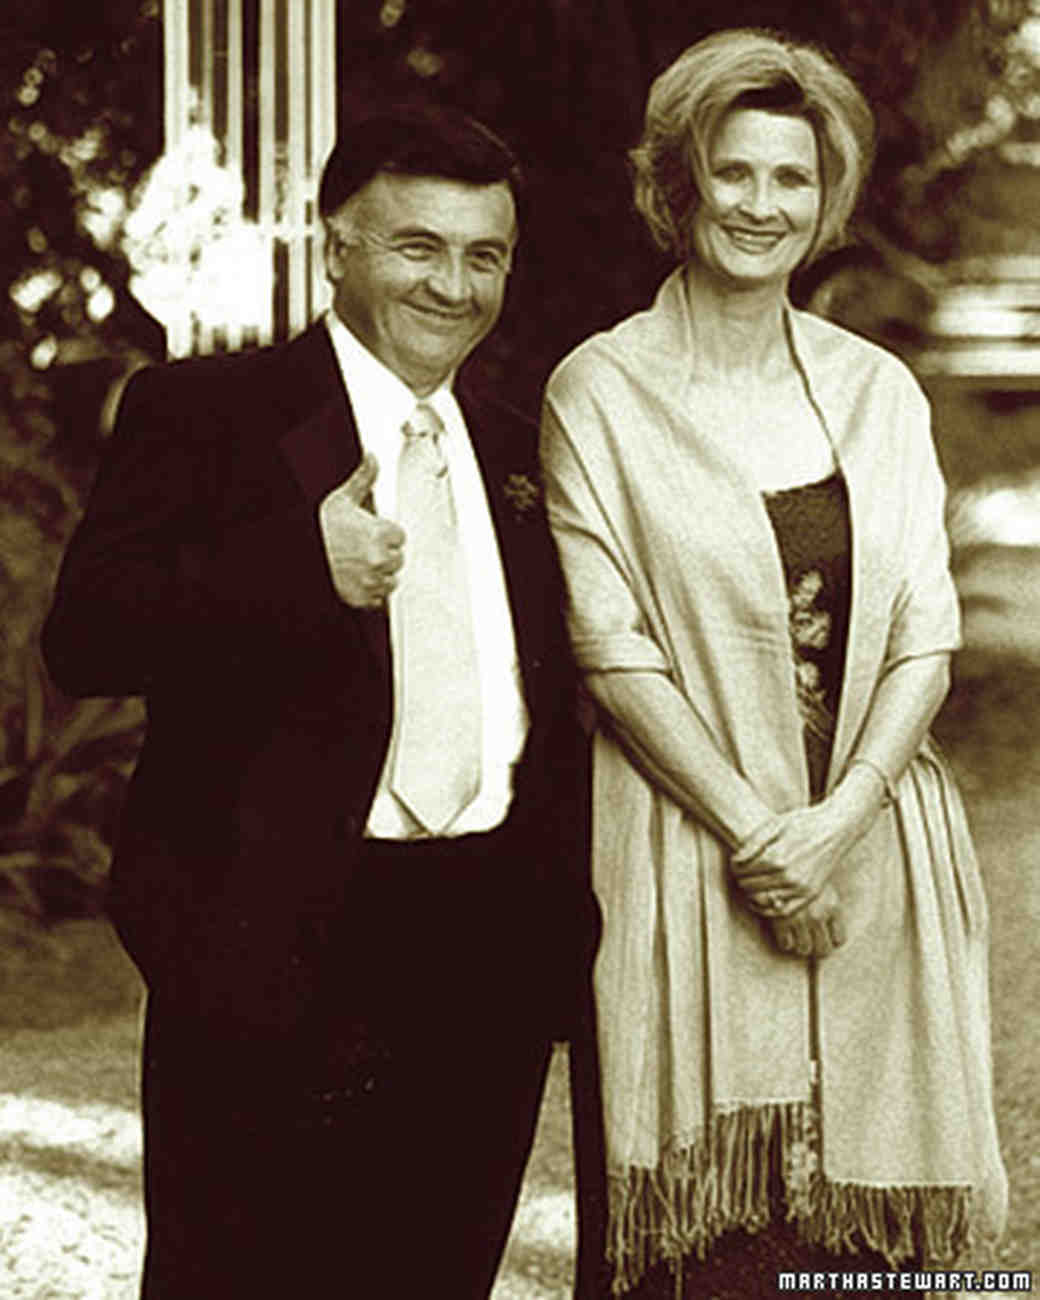 That Mexican girl is very cute and funny!